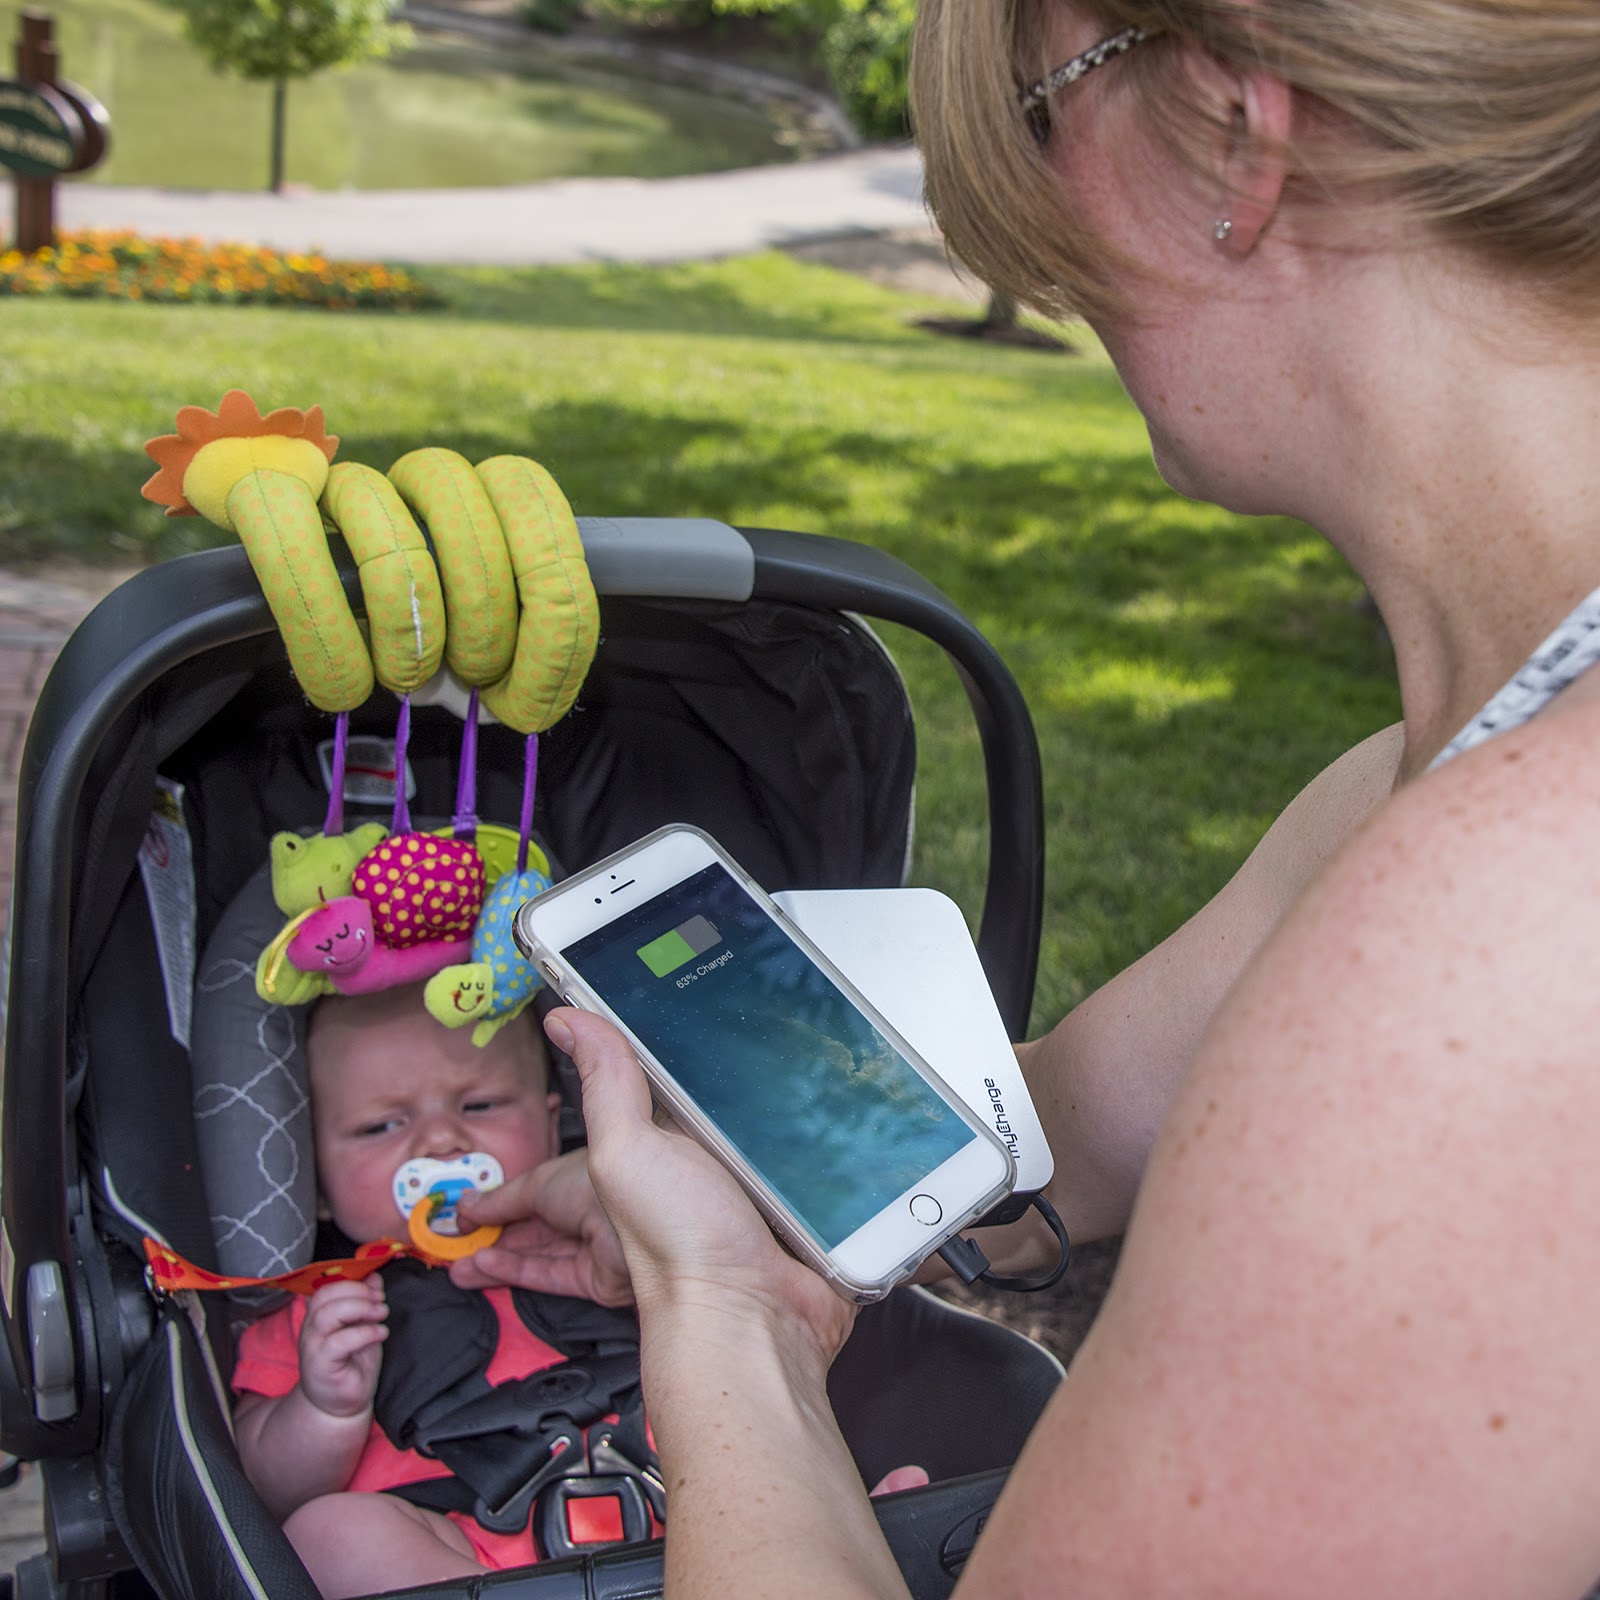 woman charging iphone while taking care of baby